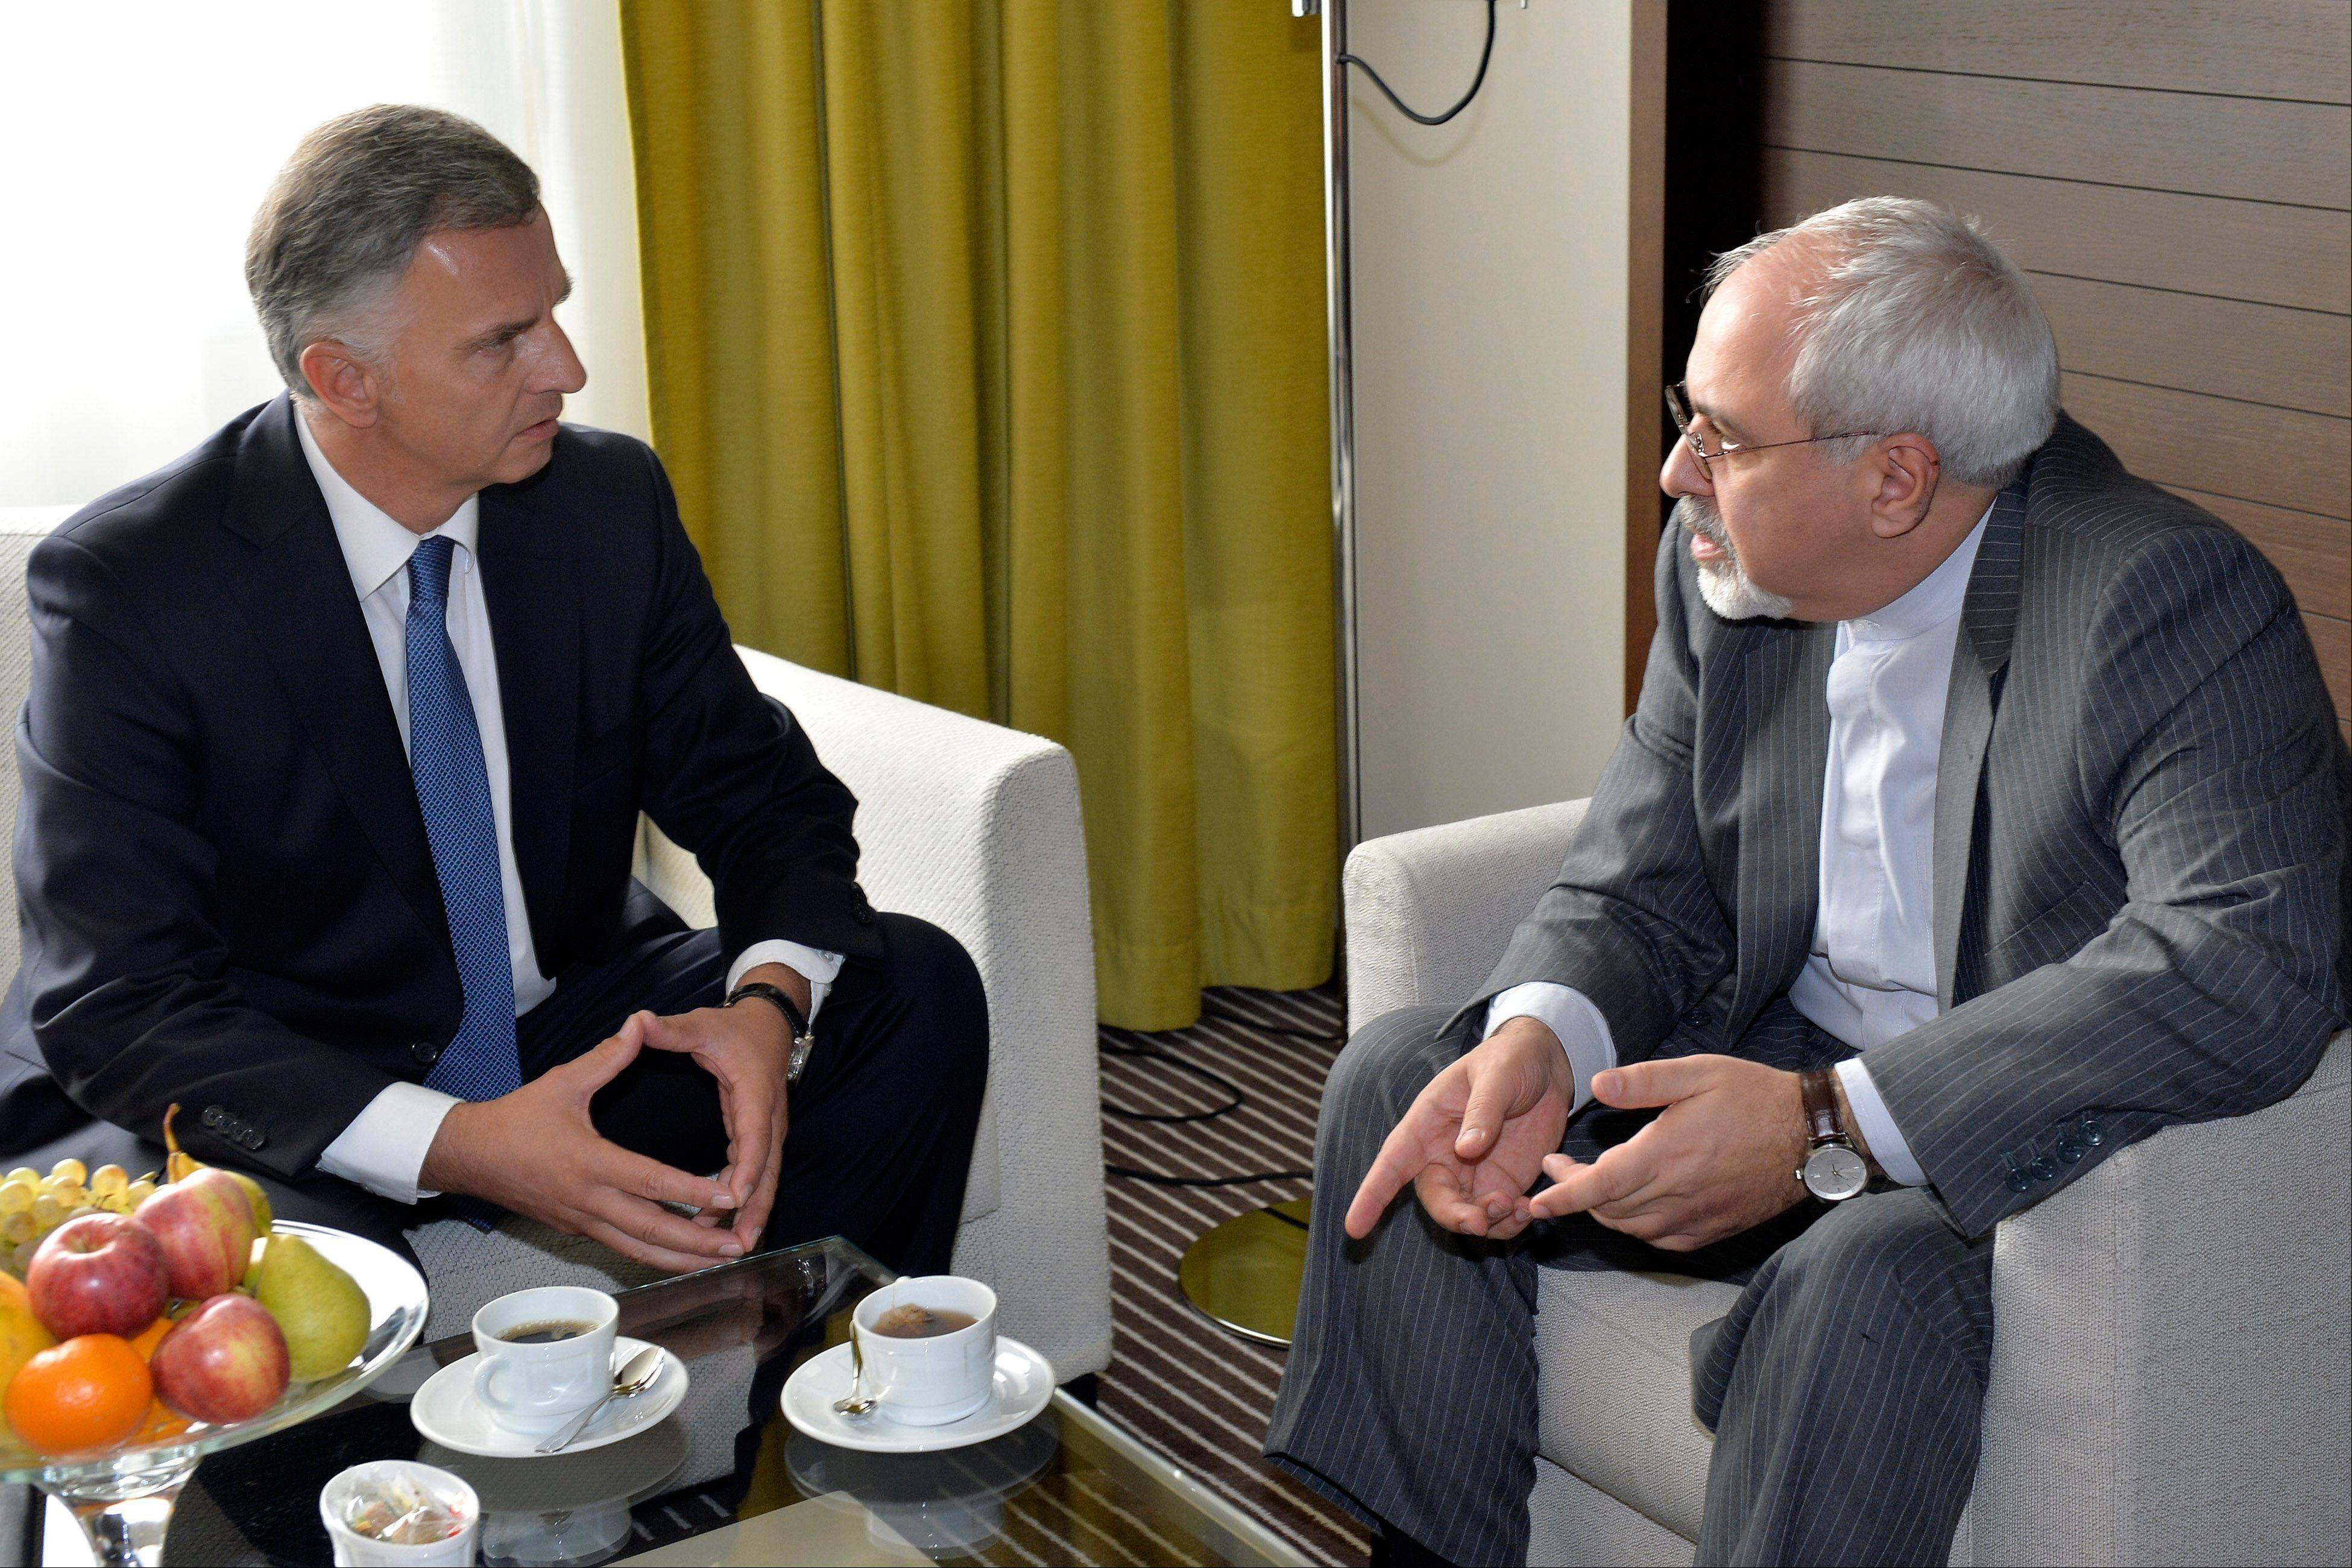 Switzerland's Foreign Minister Didier Burkhalter, left, speaks with Iranian Foreign Minister Mohammad Javad Zarif, right, during a meeting besides of the two days of closed-door nuclear talks in Geneva, Switzerland, Wednesday.